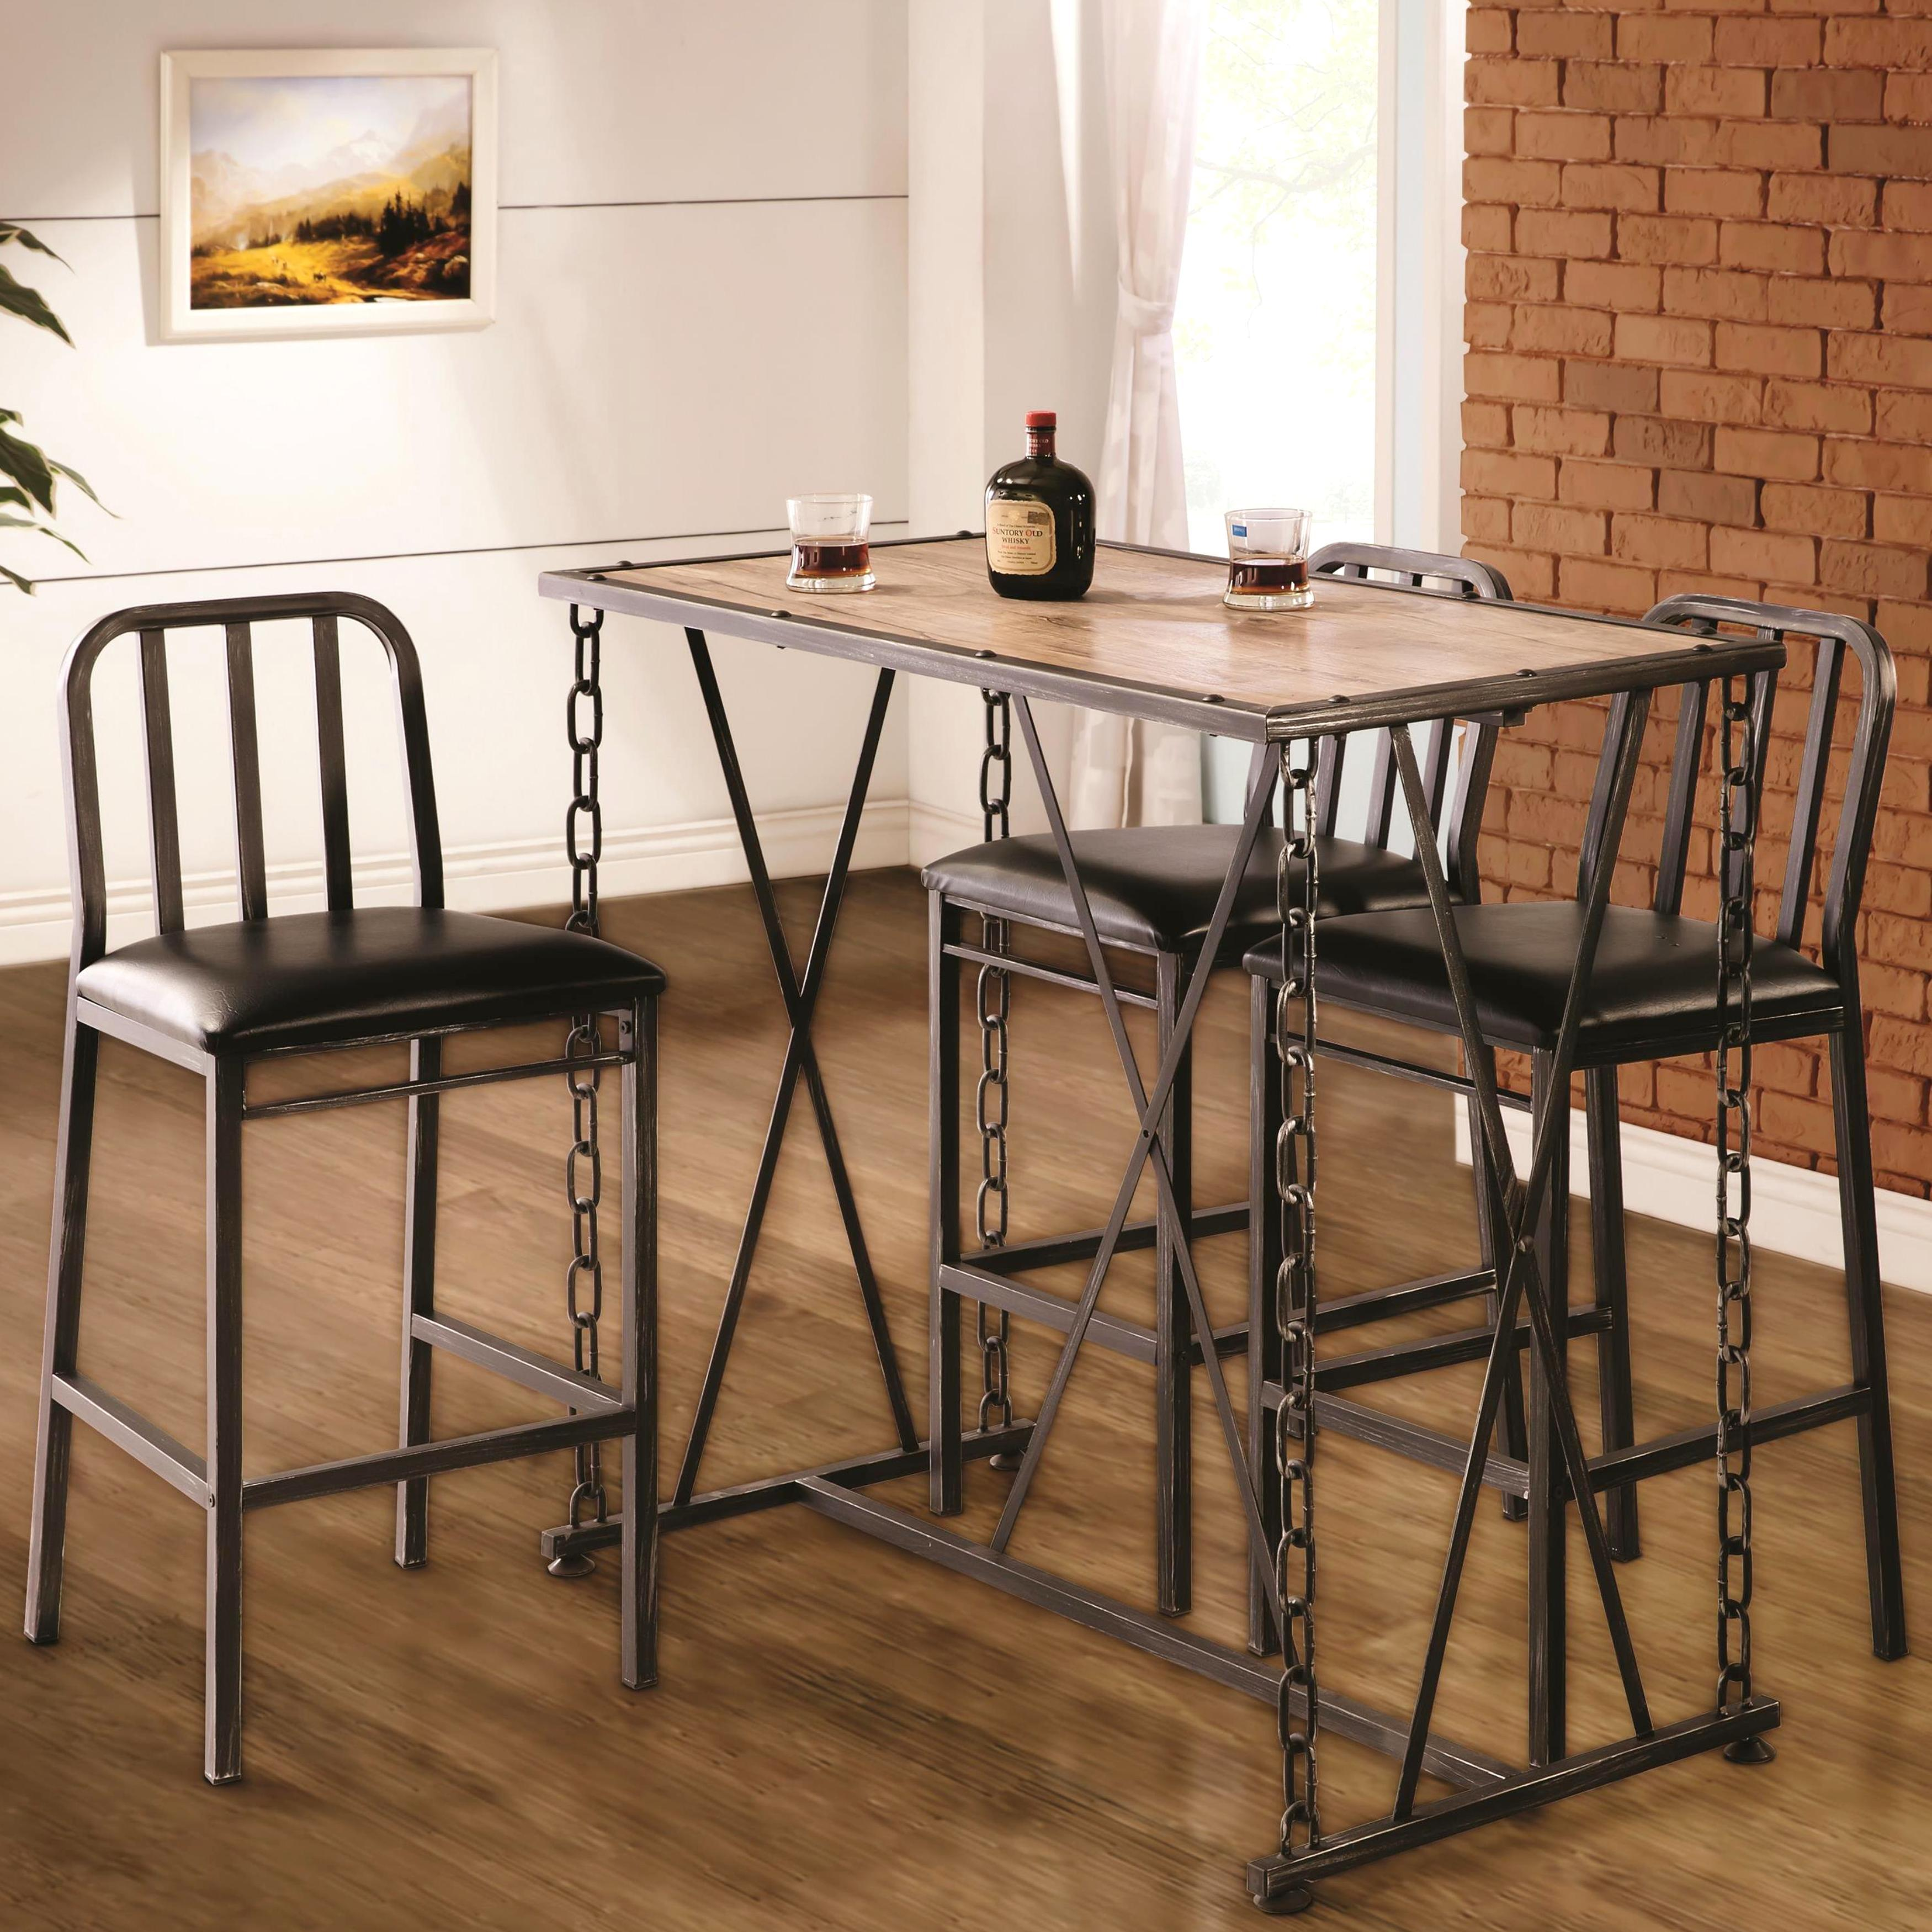 Industrial Distressed Finish Chain Link Bistro Bar Pub Table and